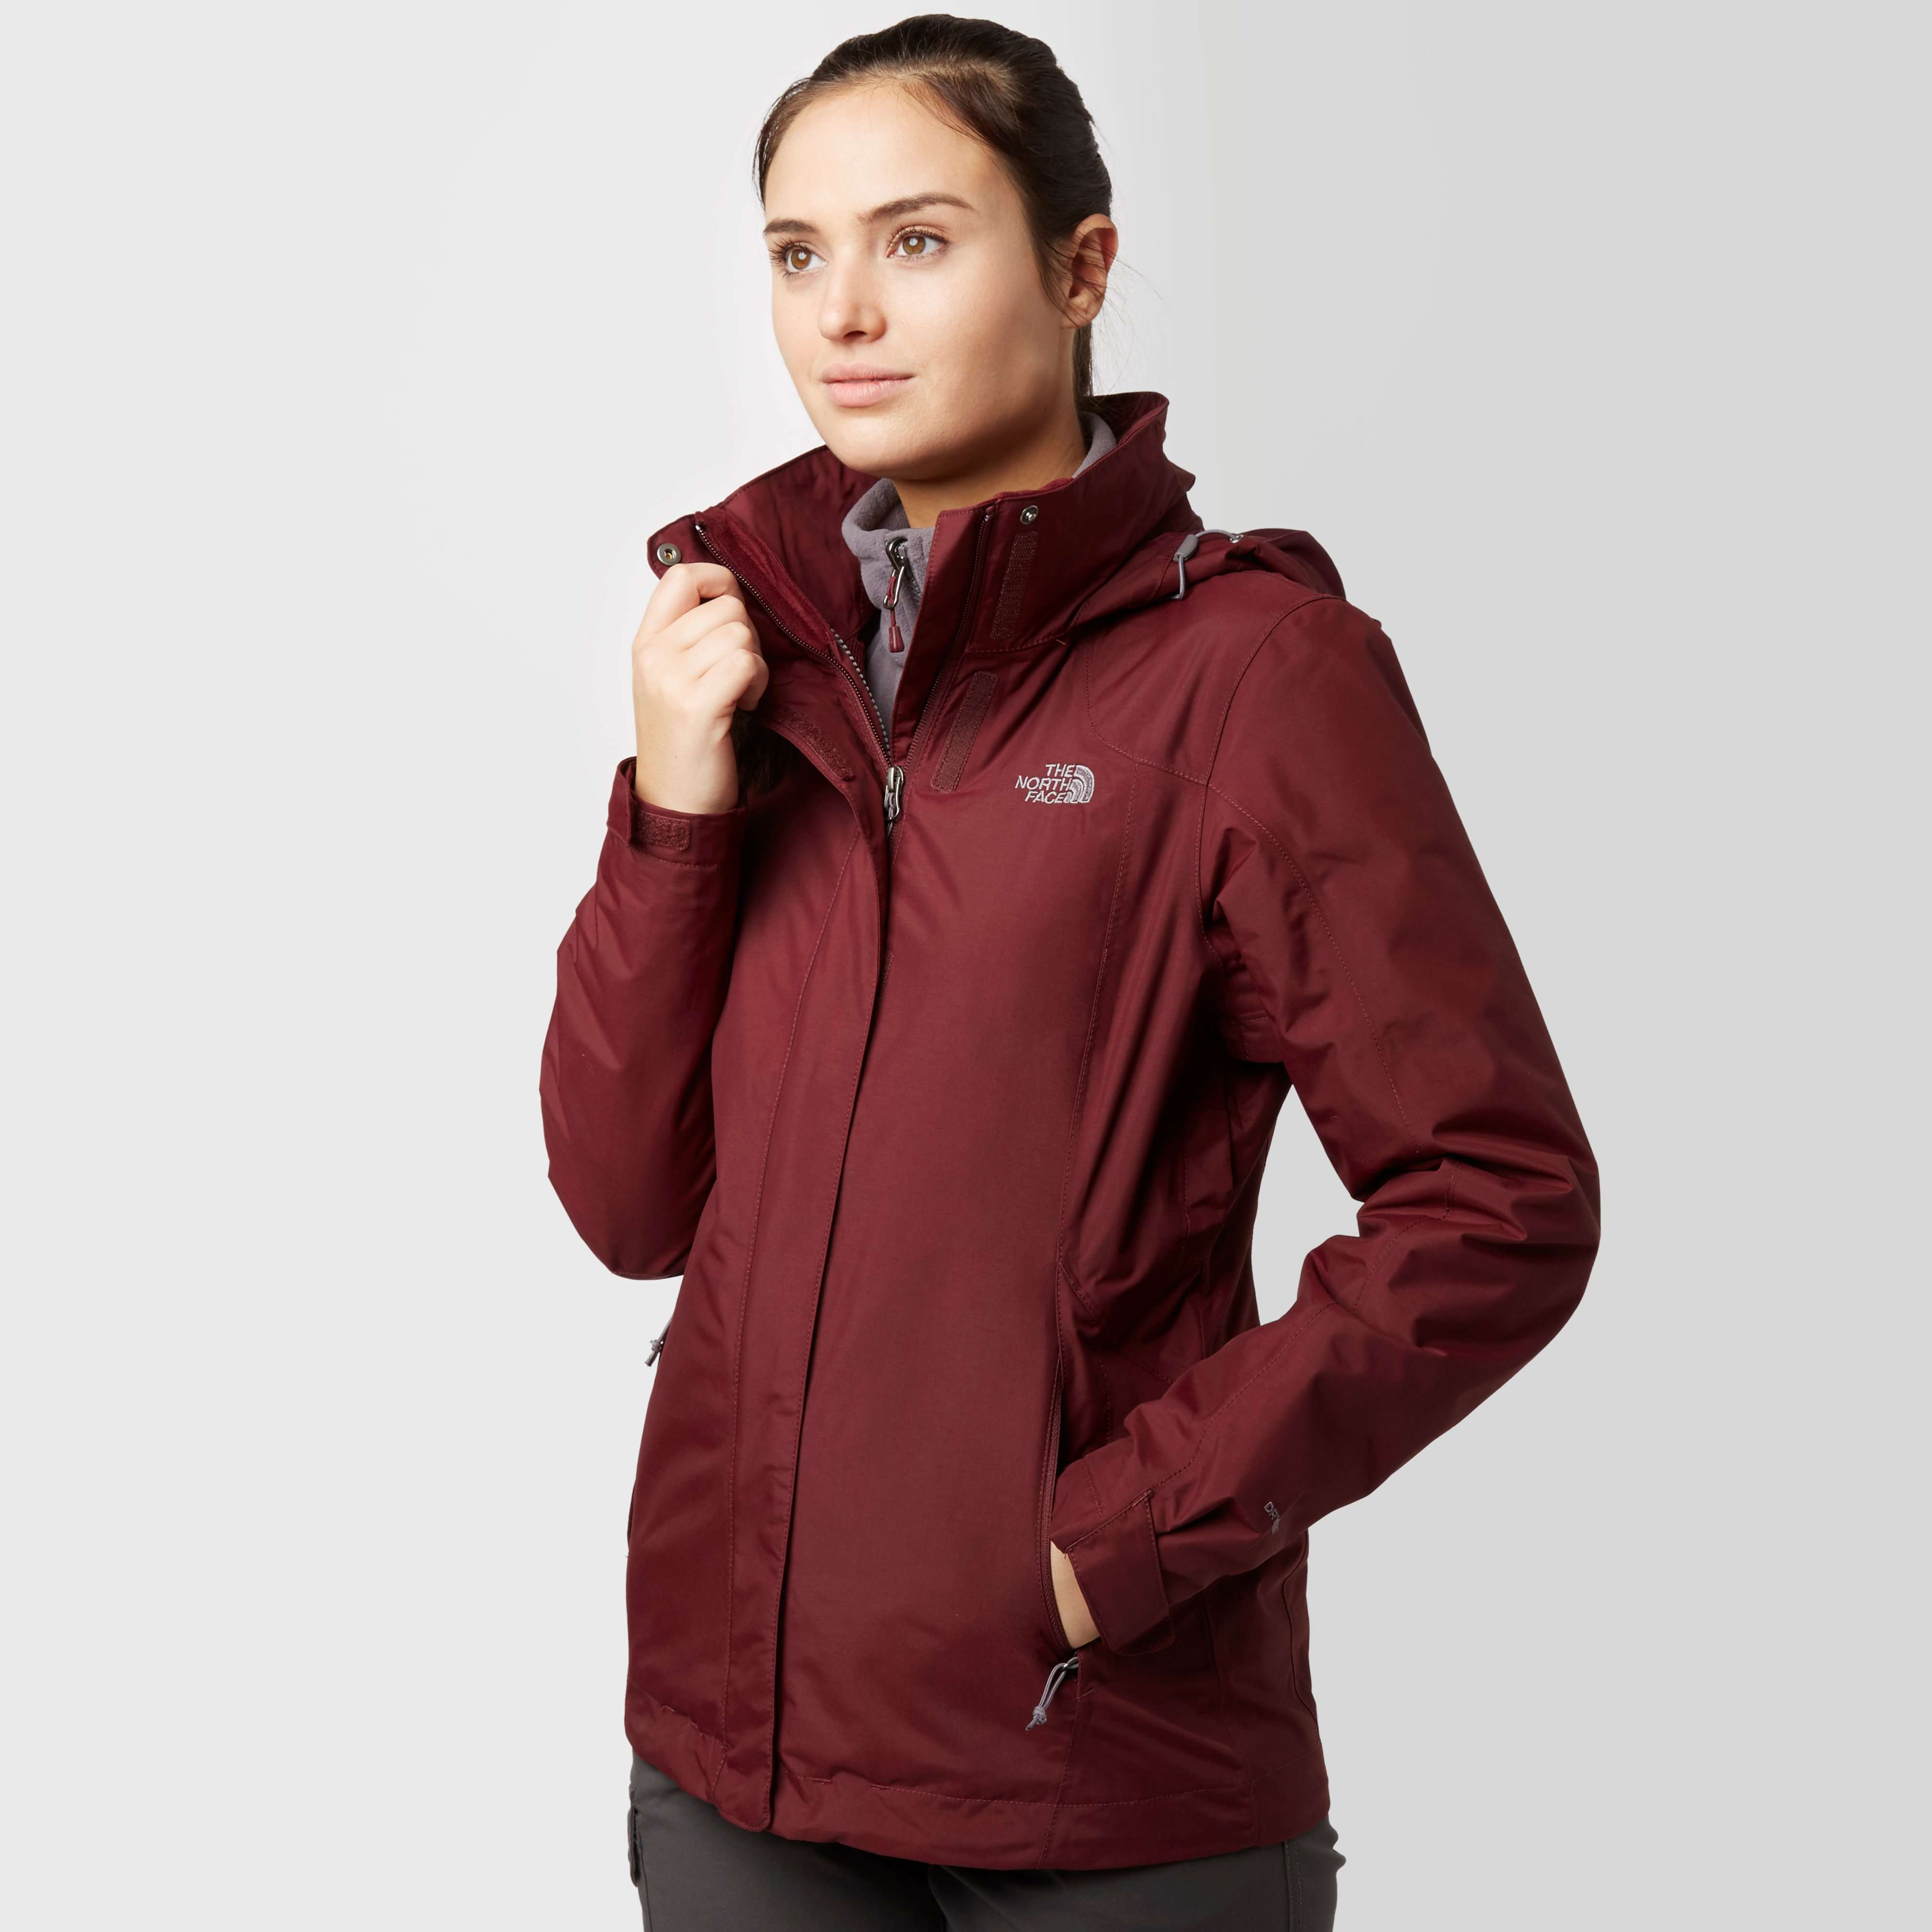 THE NORTH FACE Women's Evolution II TriClimate® 3 in 1 Jacket